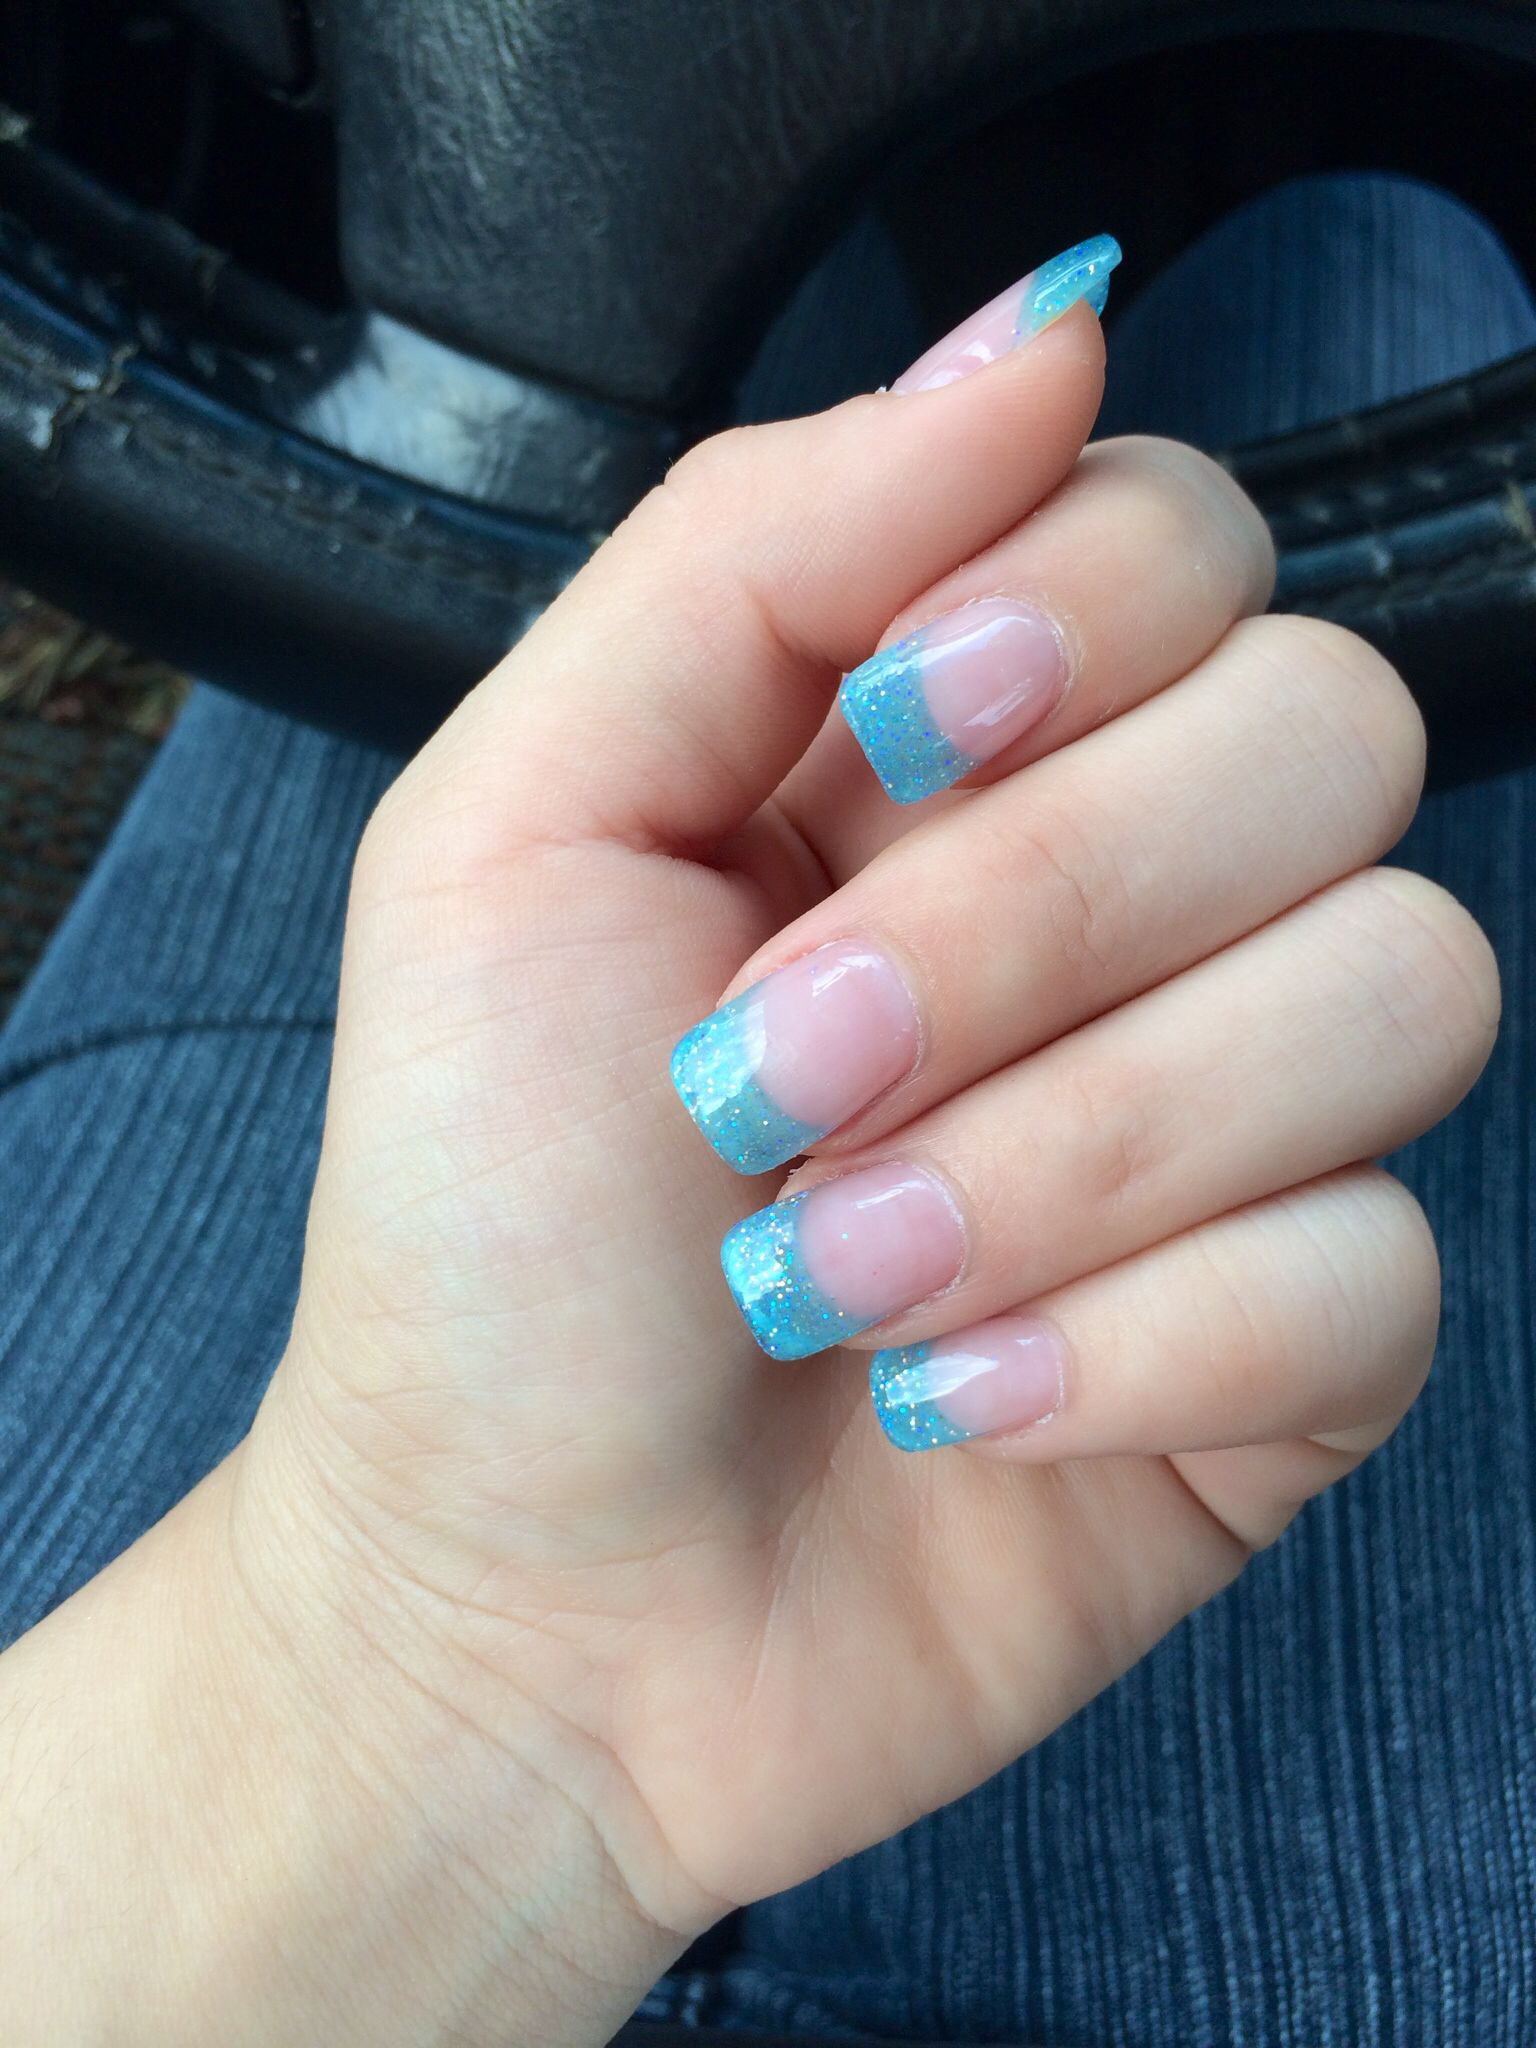 Blue glitter acrylic nails| French tip nails| acrylic nails| glitter ...